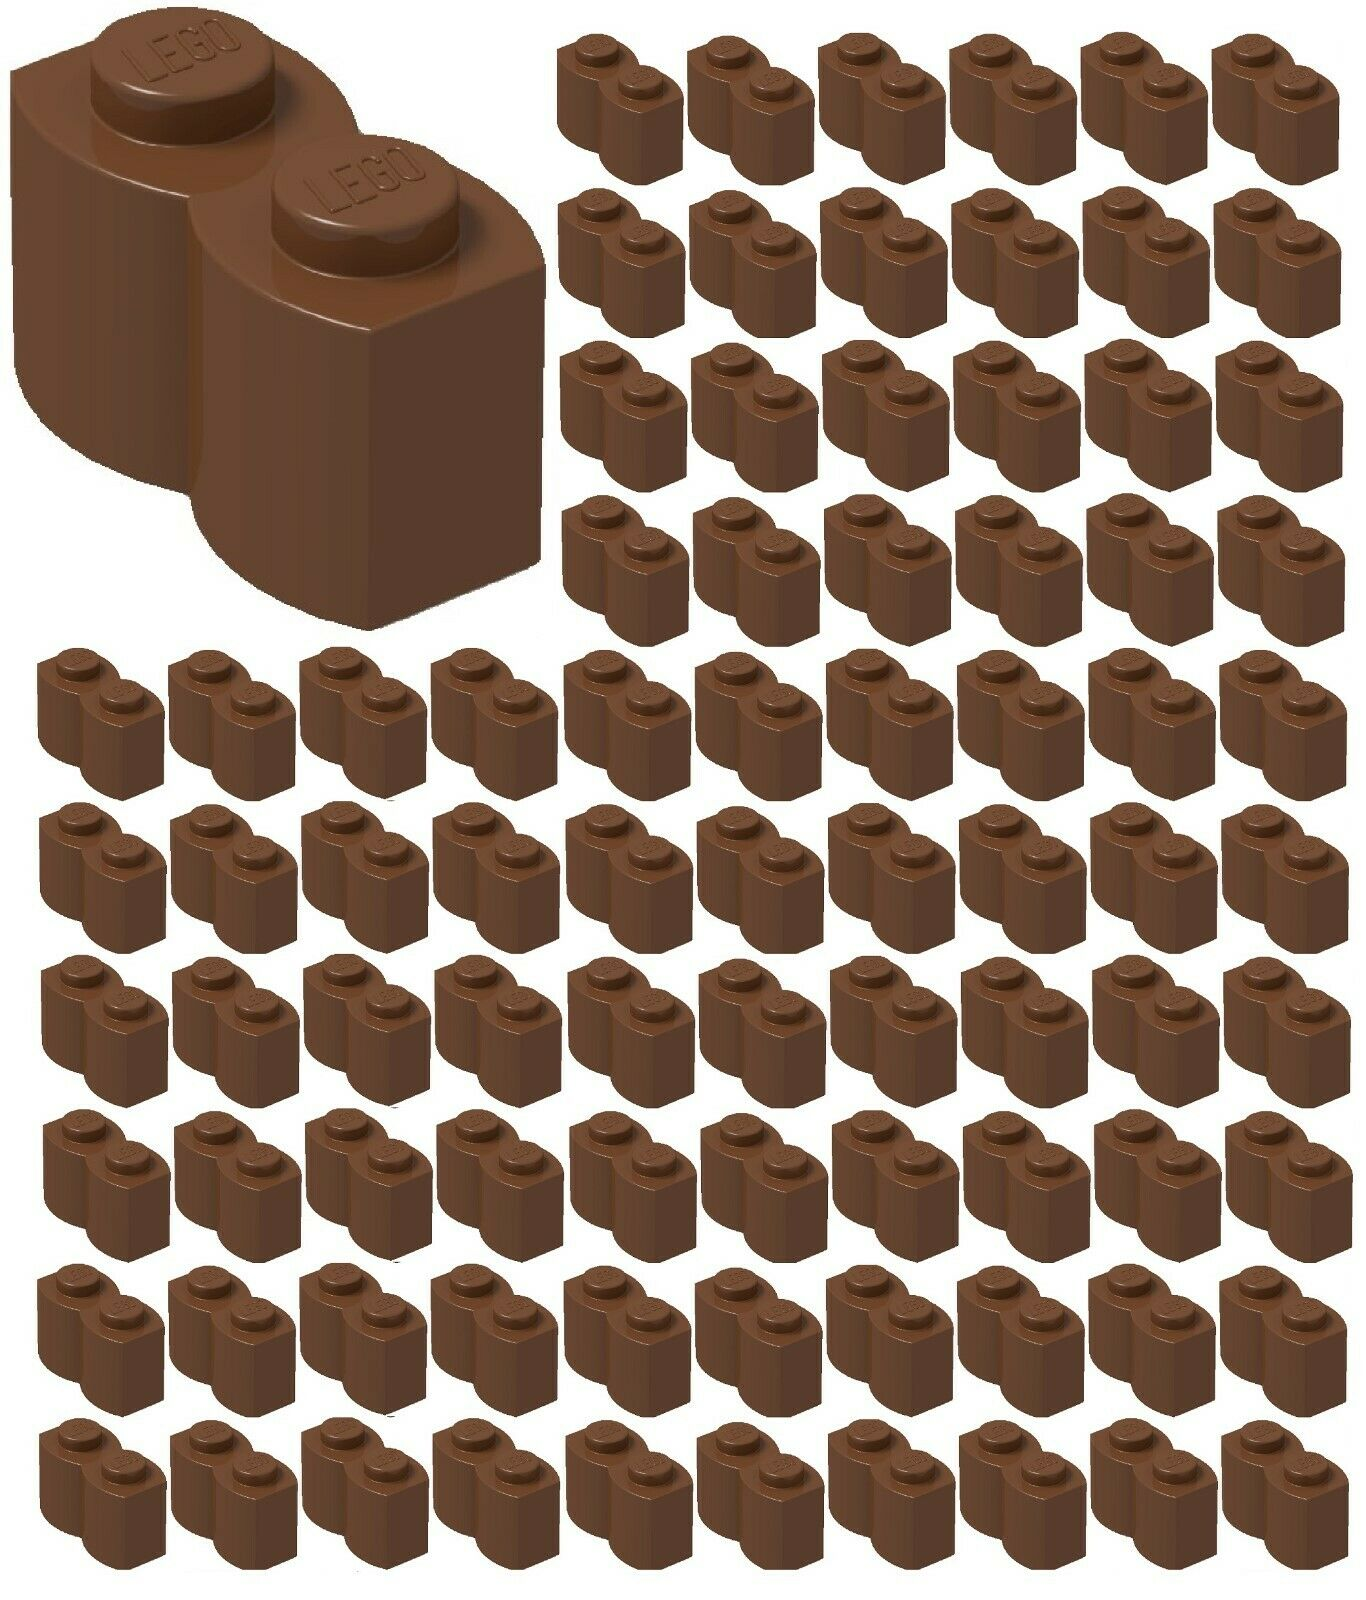 Lego X100 New Reddish Brown 1x1 Brick Bulk Building Parts Lot